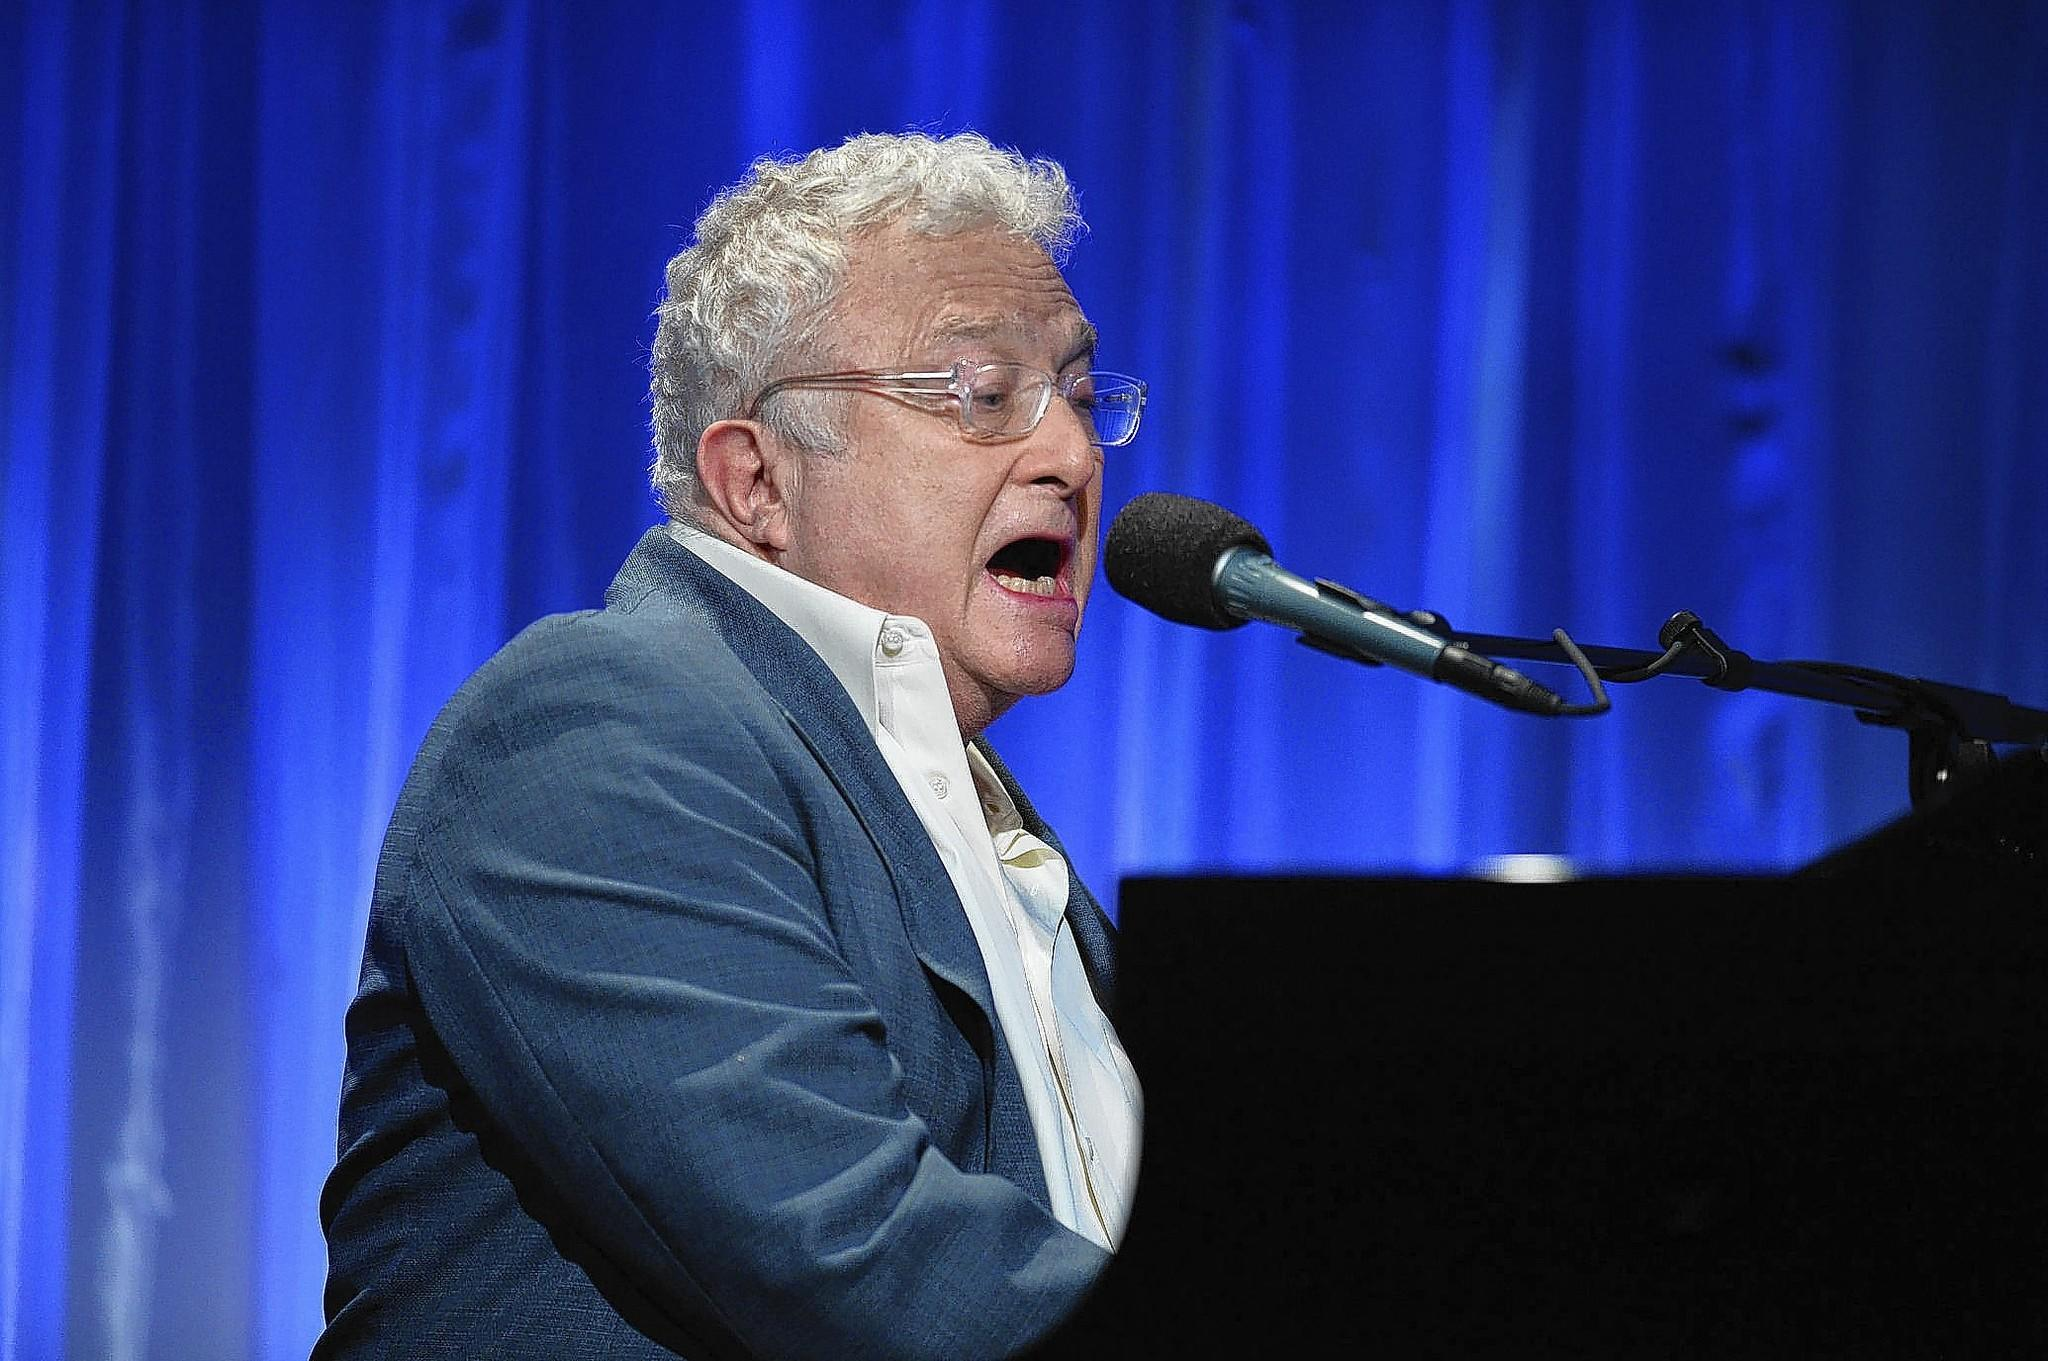 Singer songwriter pianist Randy Newman performs at the State Theatre in Easton Nov. 21. Tickets to the new season of State Theatre shows are on sale now to members and go on sale to the public on Tuesday.